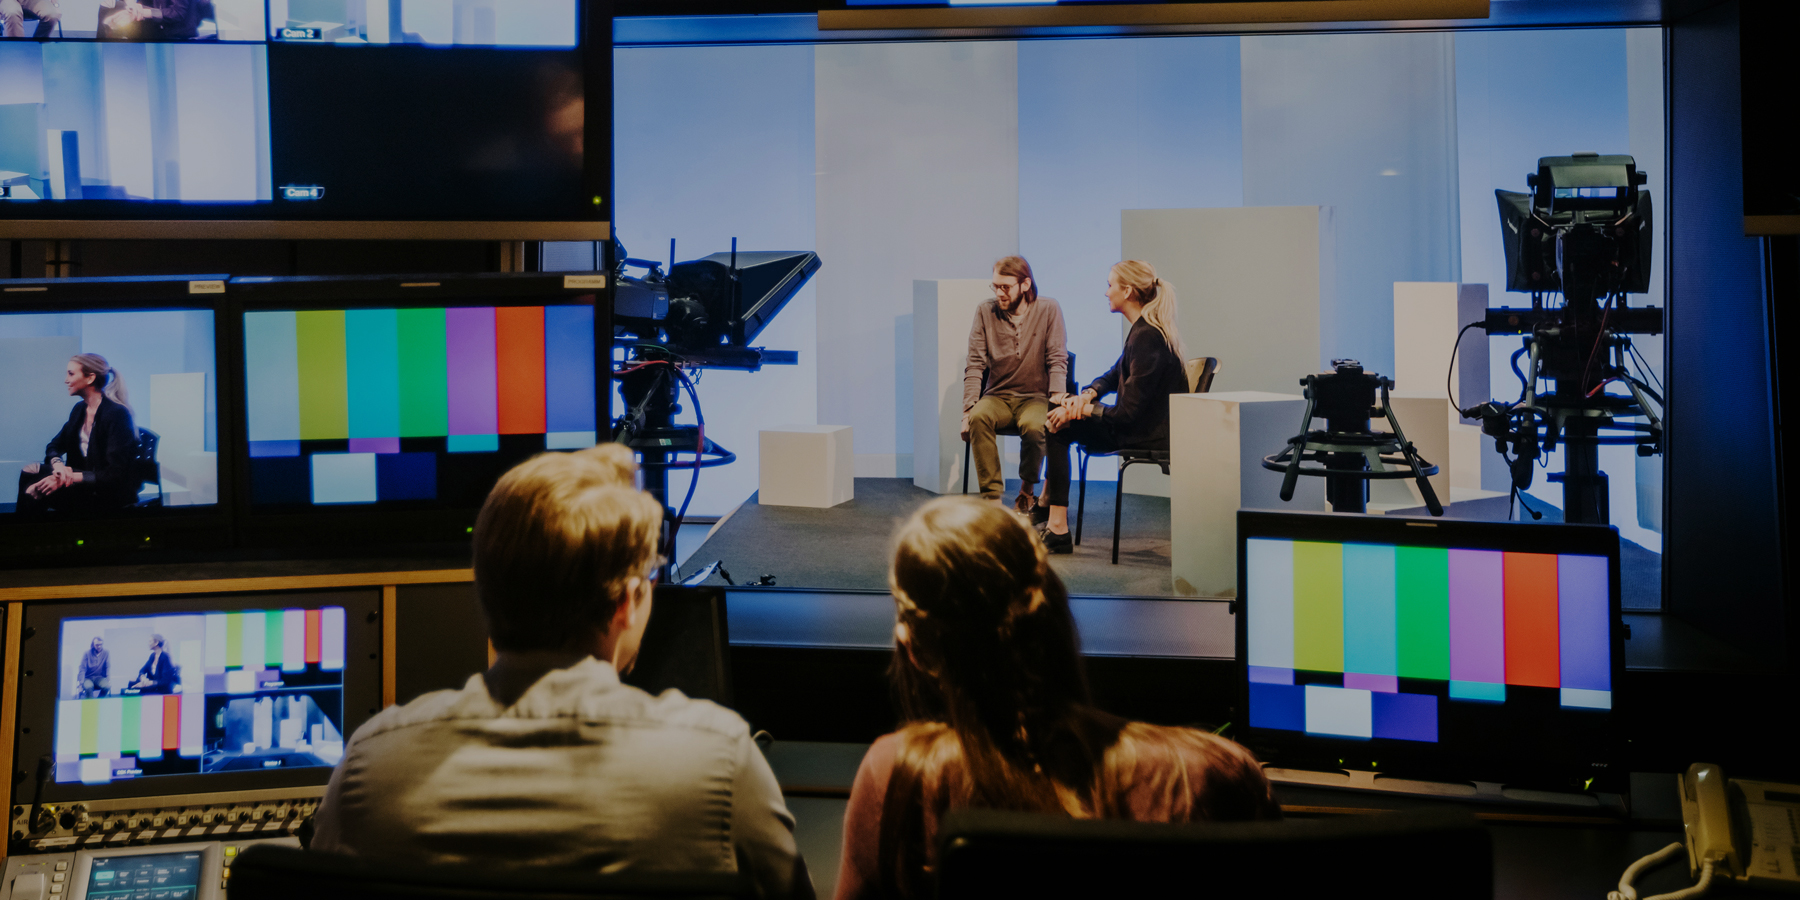 Students filming in a television studio